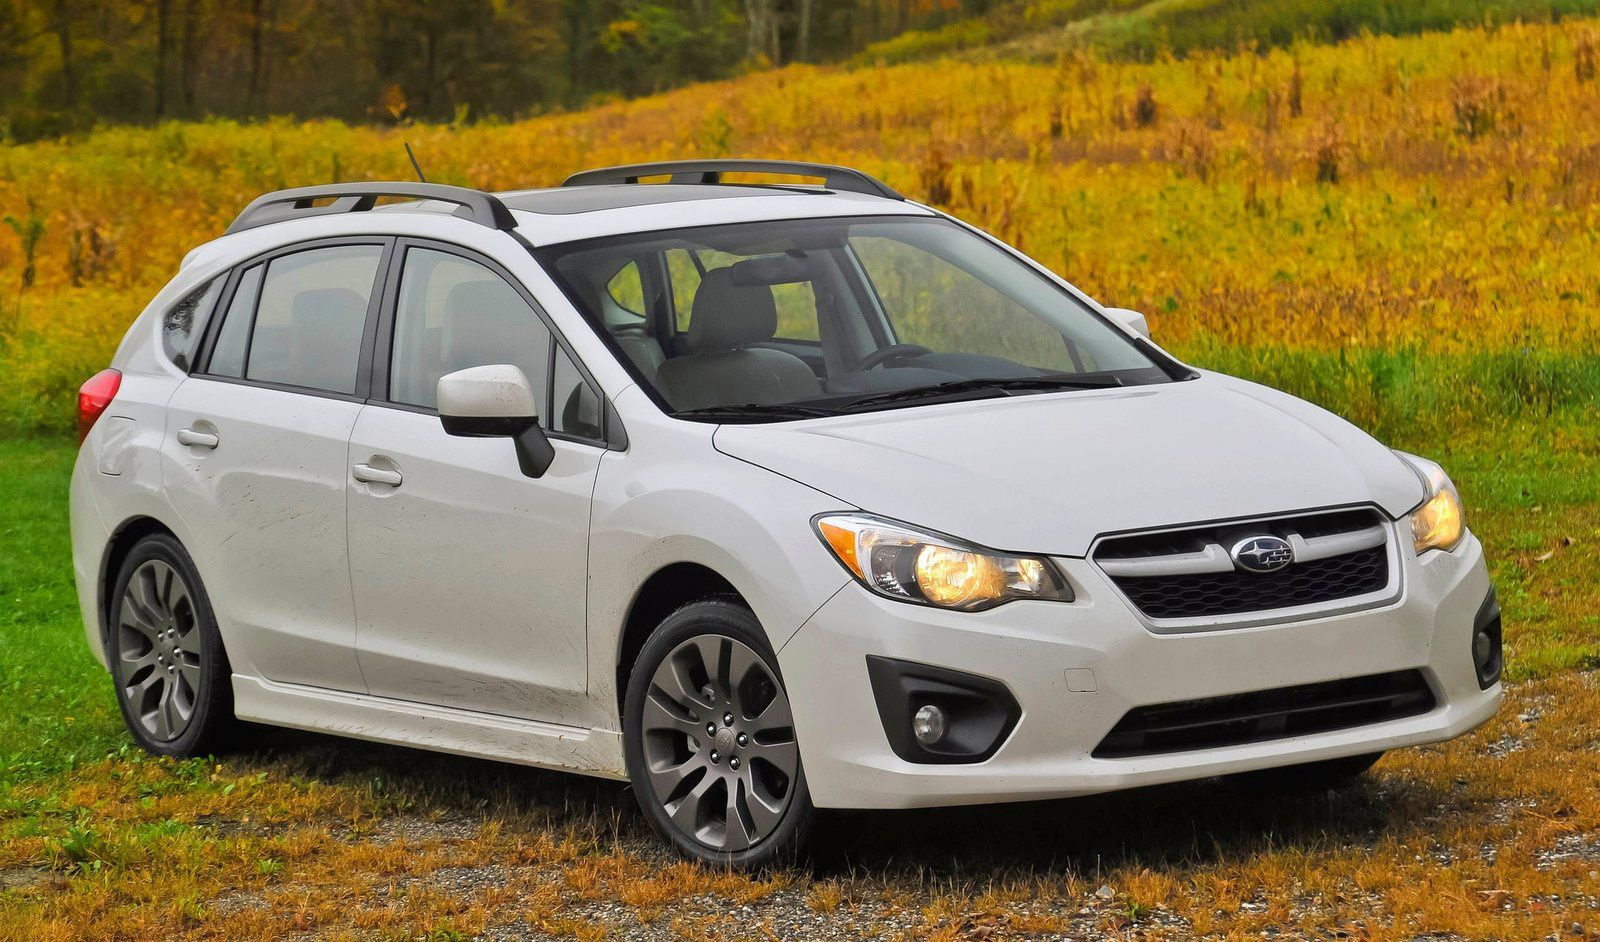 The 20 Best Hatchbacks Under $25,000 | Best small cars, Car for teens,  Small cars